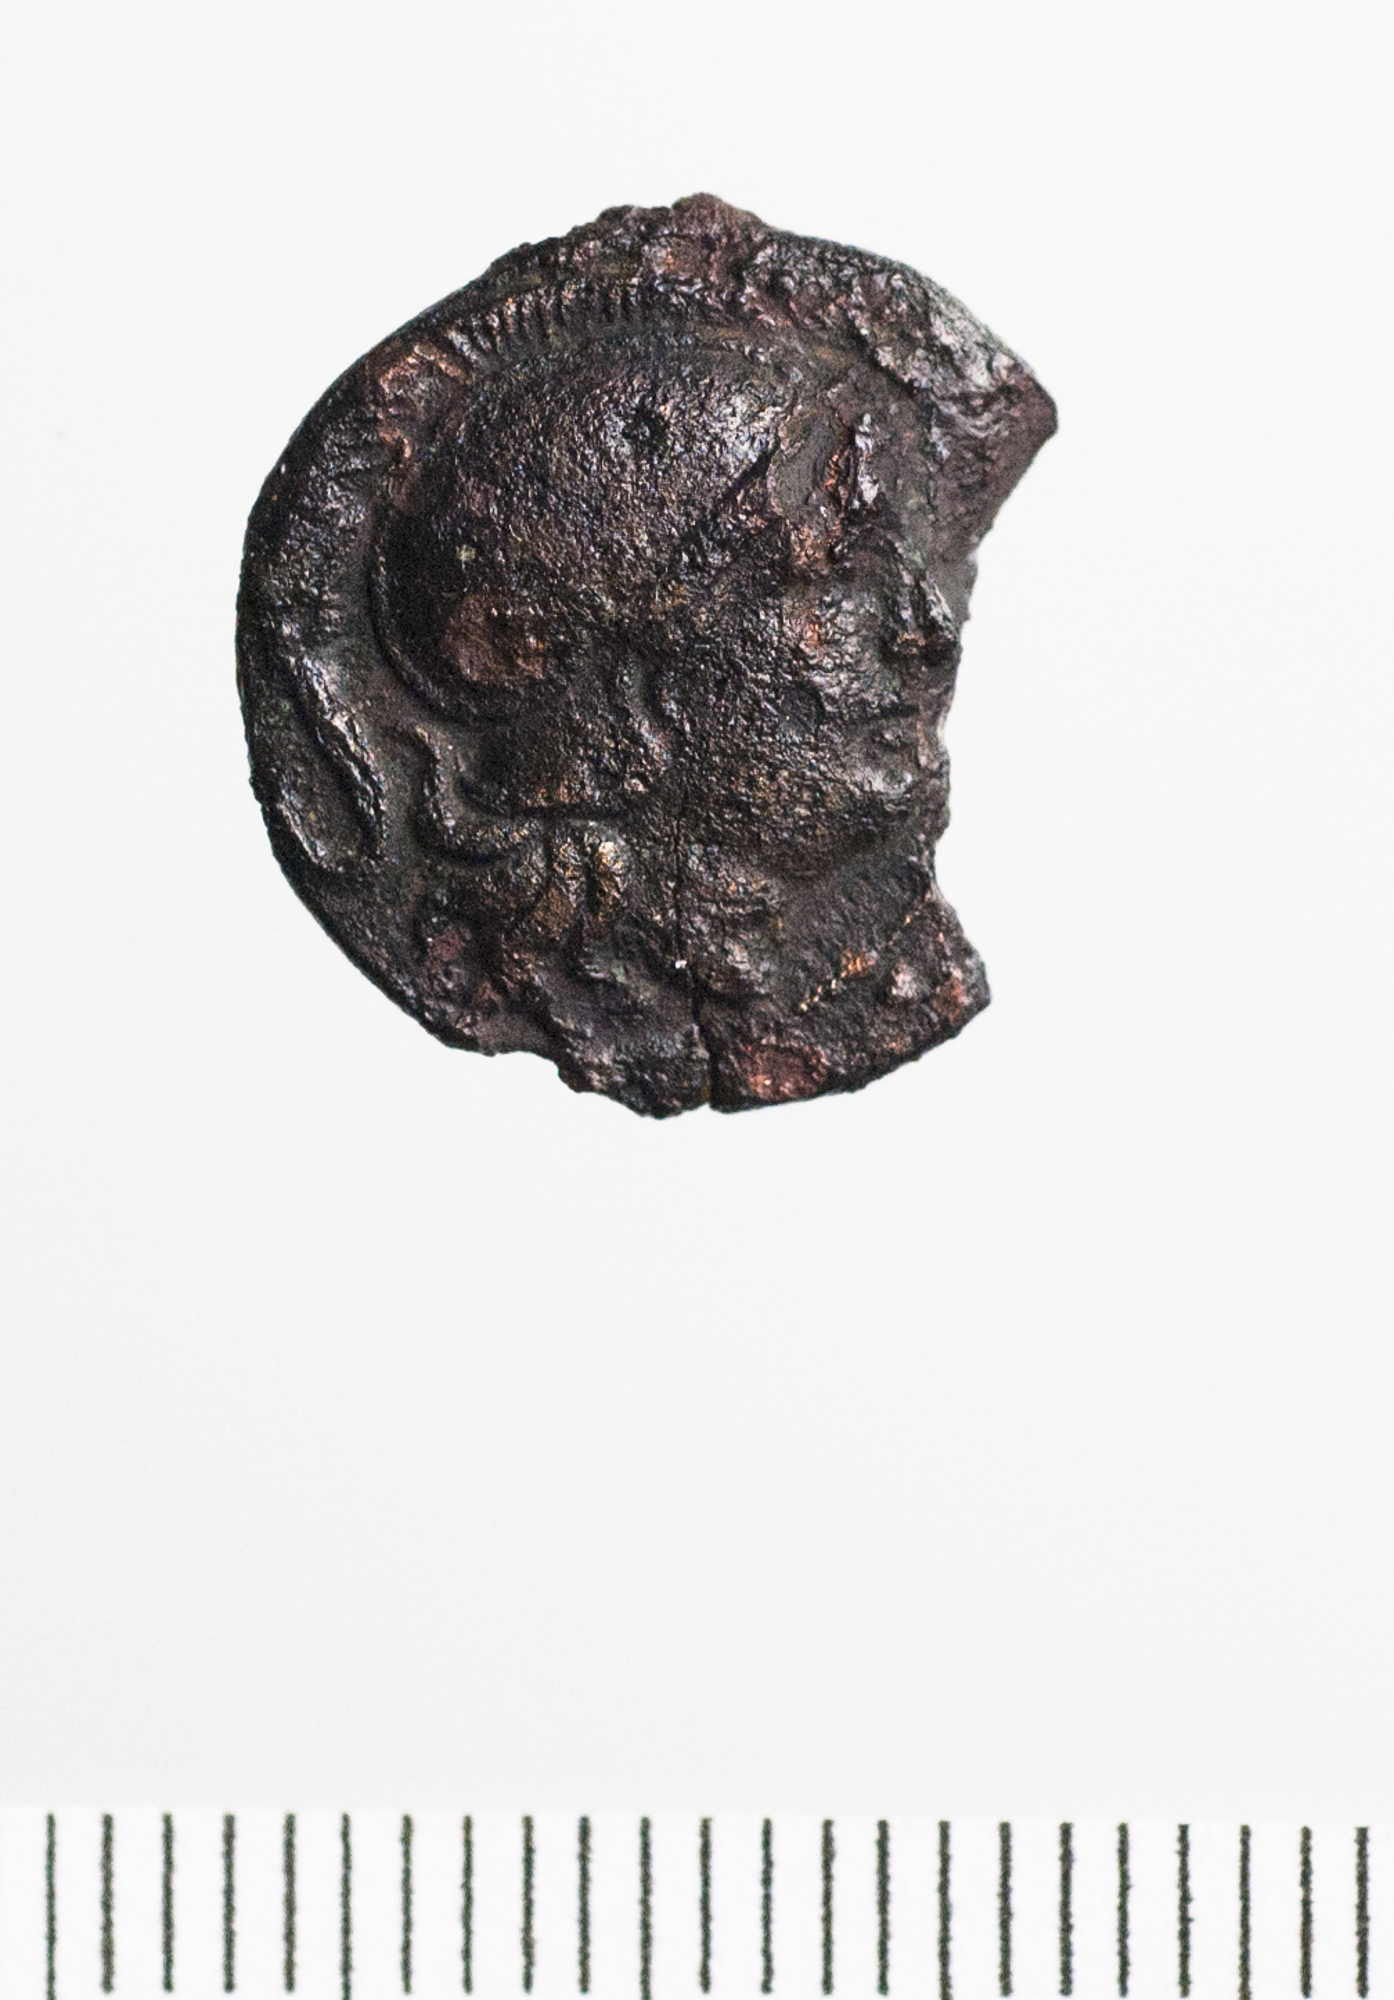 Hellenistic Bronze/Copper Alloy Half unit of Probably Sardis